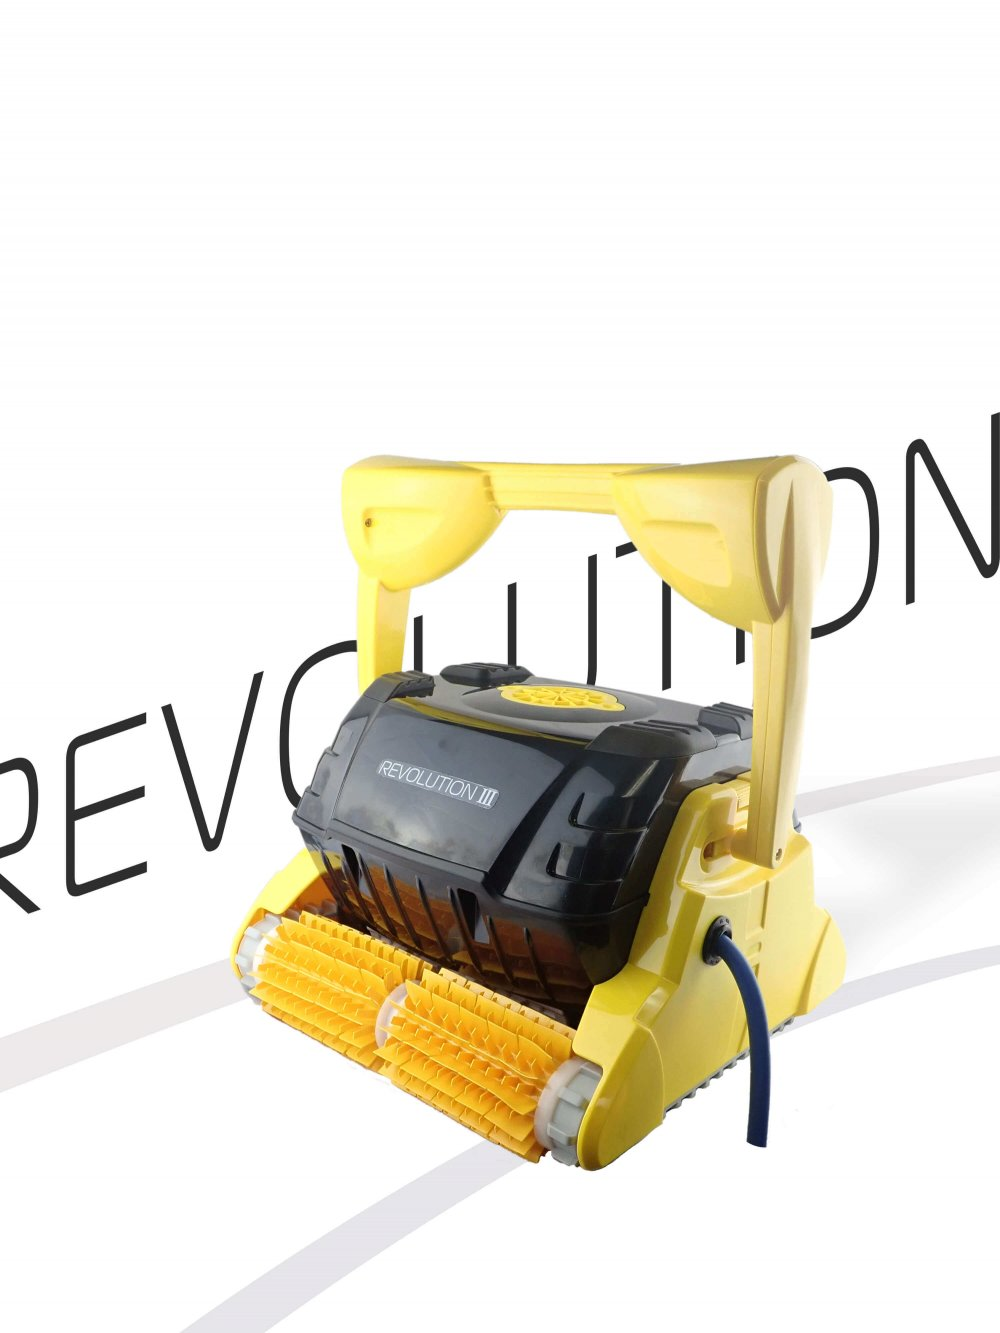 Yellow Revolution 3 robotic pool cleaner against a branded Revolution background.